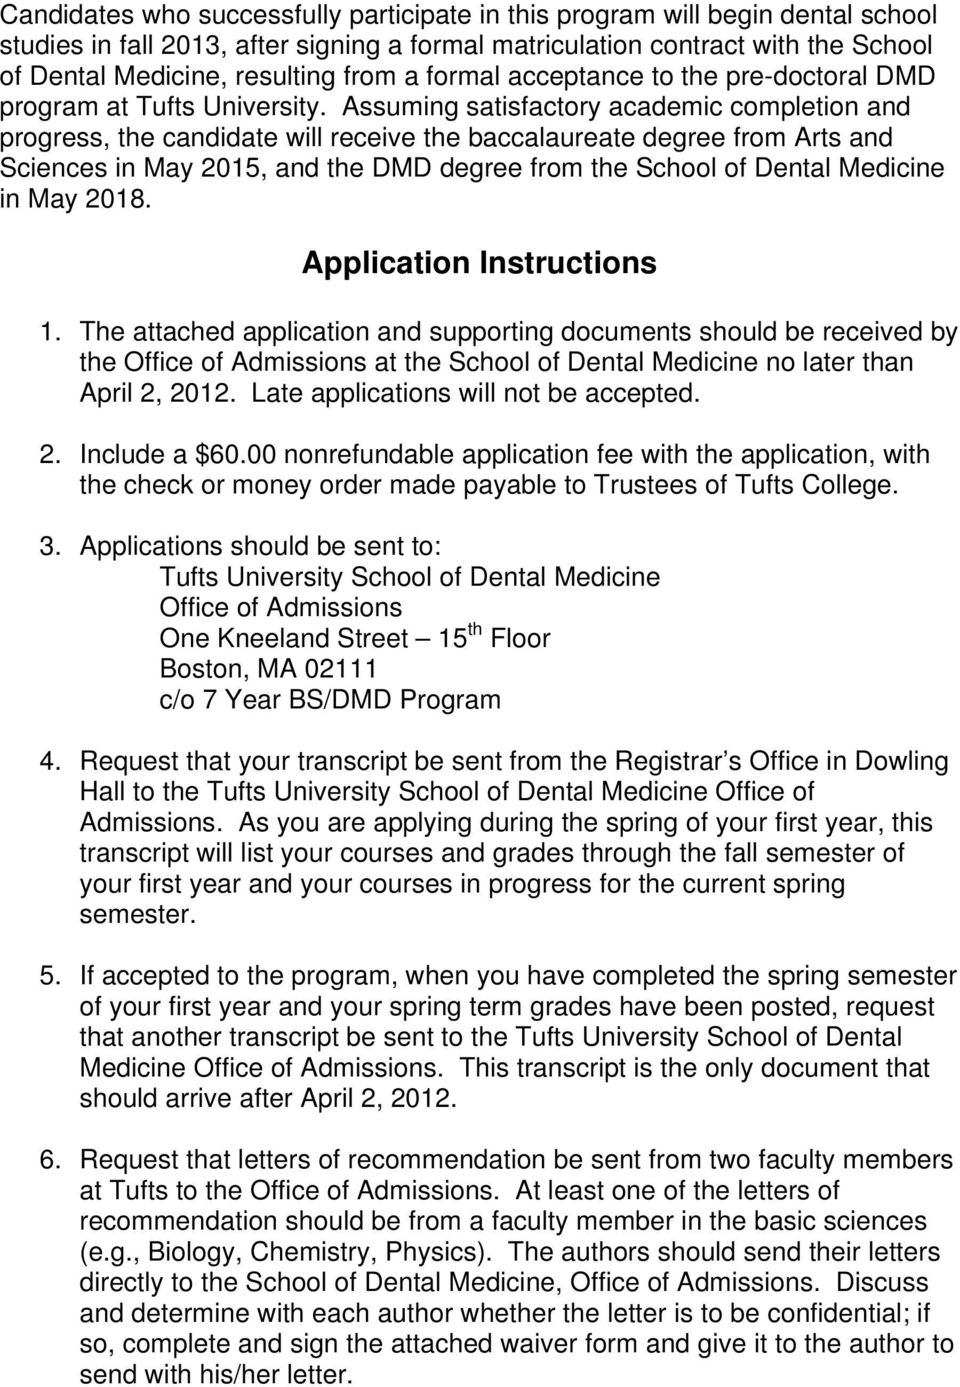 Assuming satisfactory academic completion and progress, the candidate will receive the baccalaureate degree from Arts and Sciences in May 2015, and the DMD degree from the School of Dental Medicine